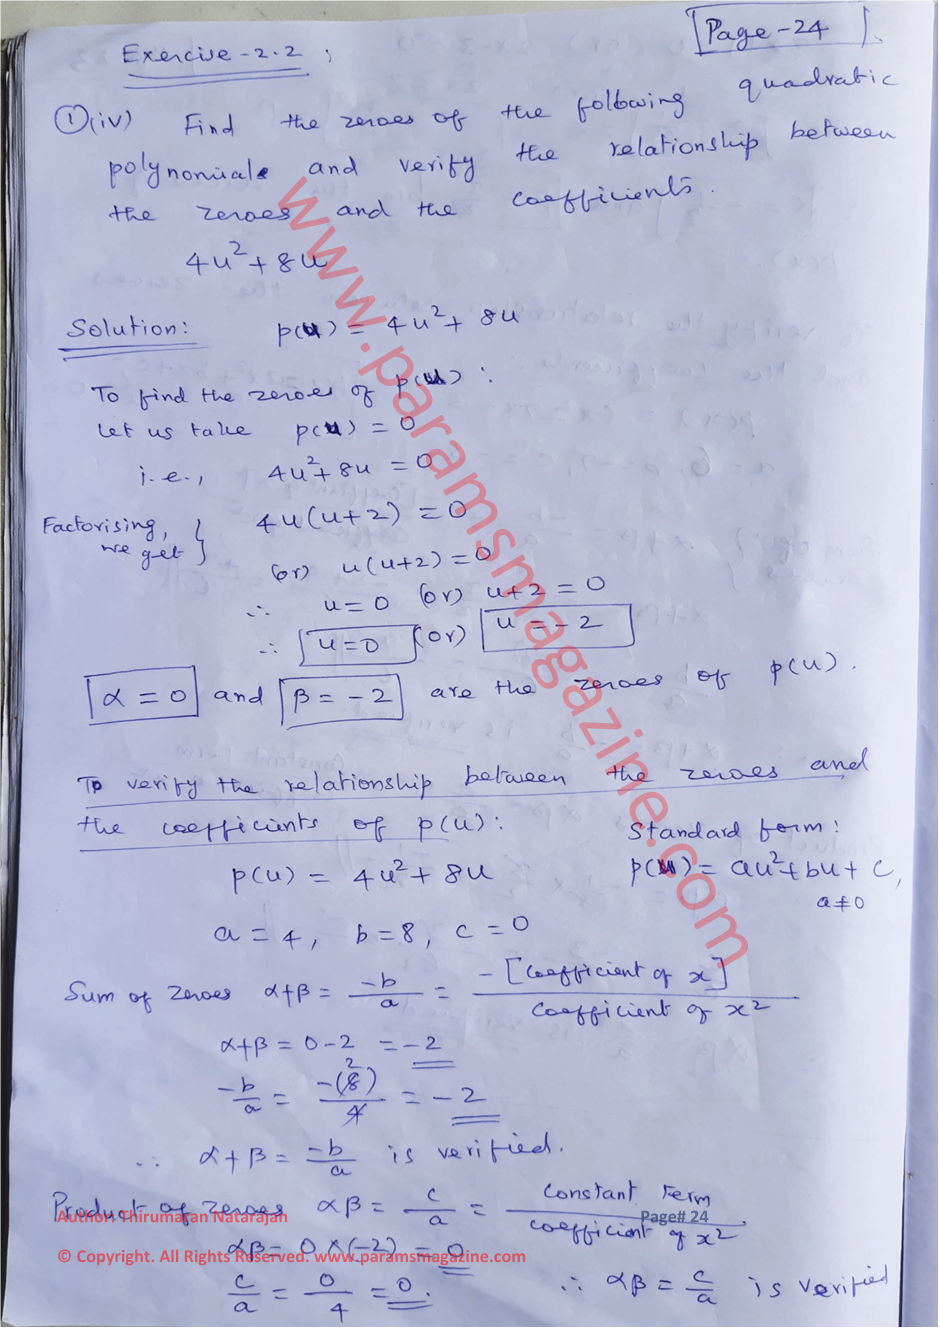 Class-10 - Polynomials - Notes - Page-24